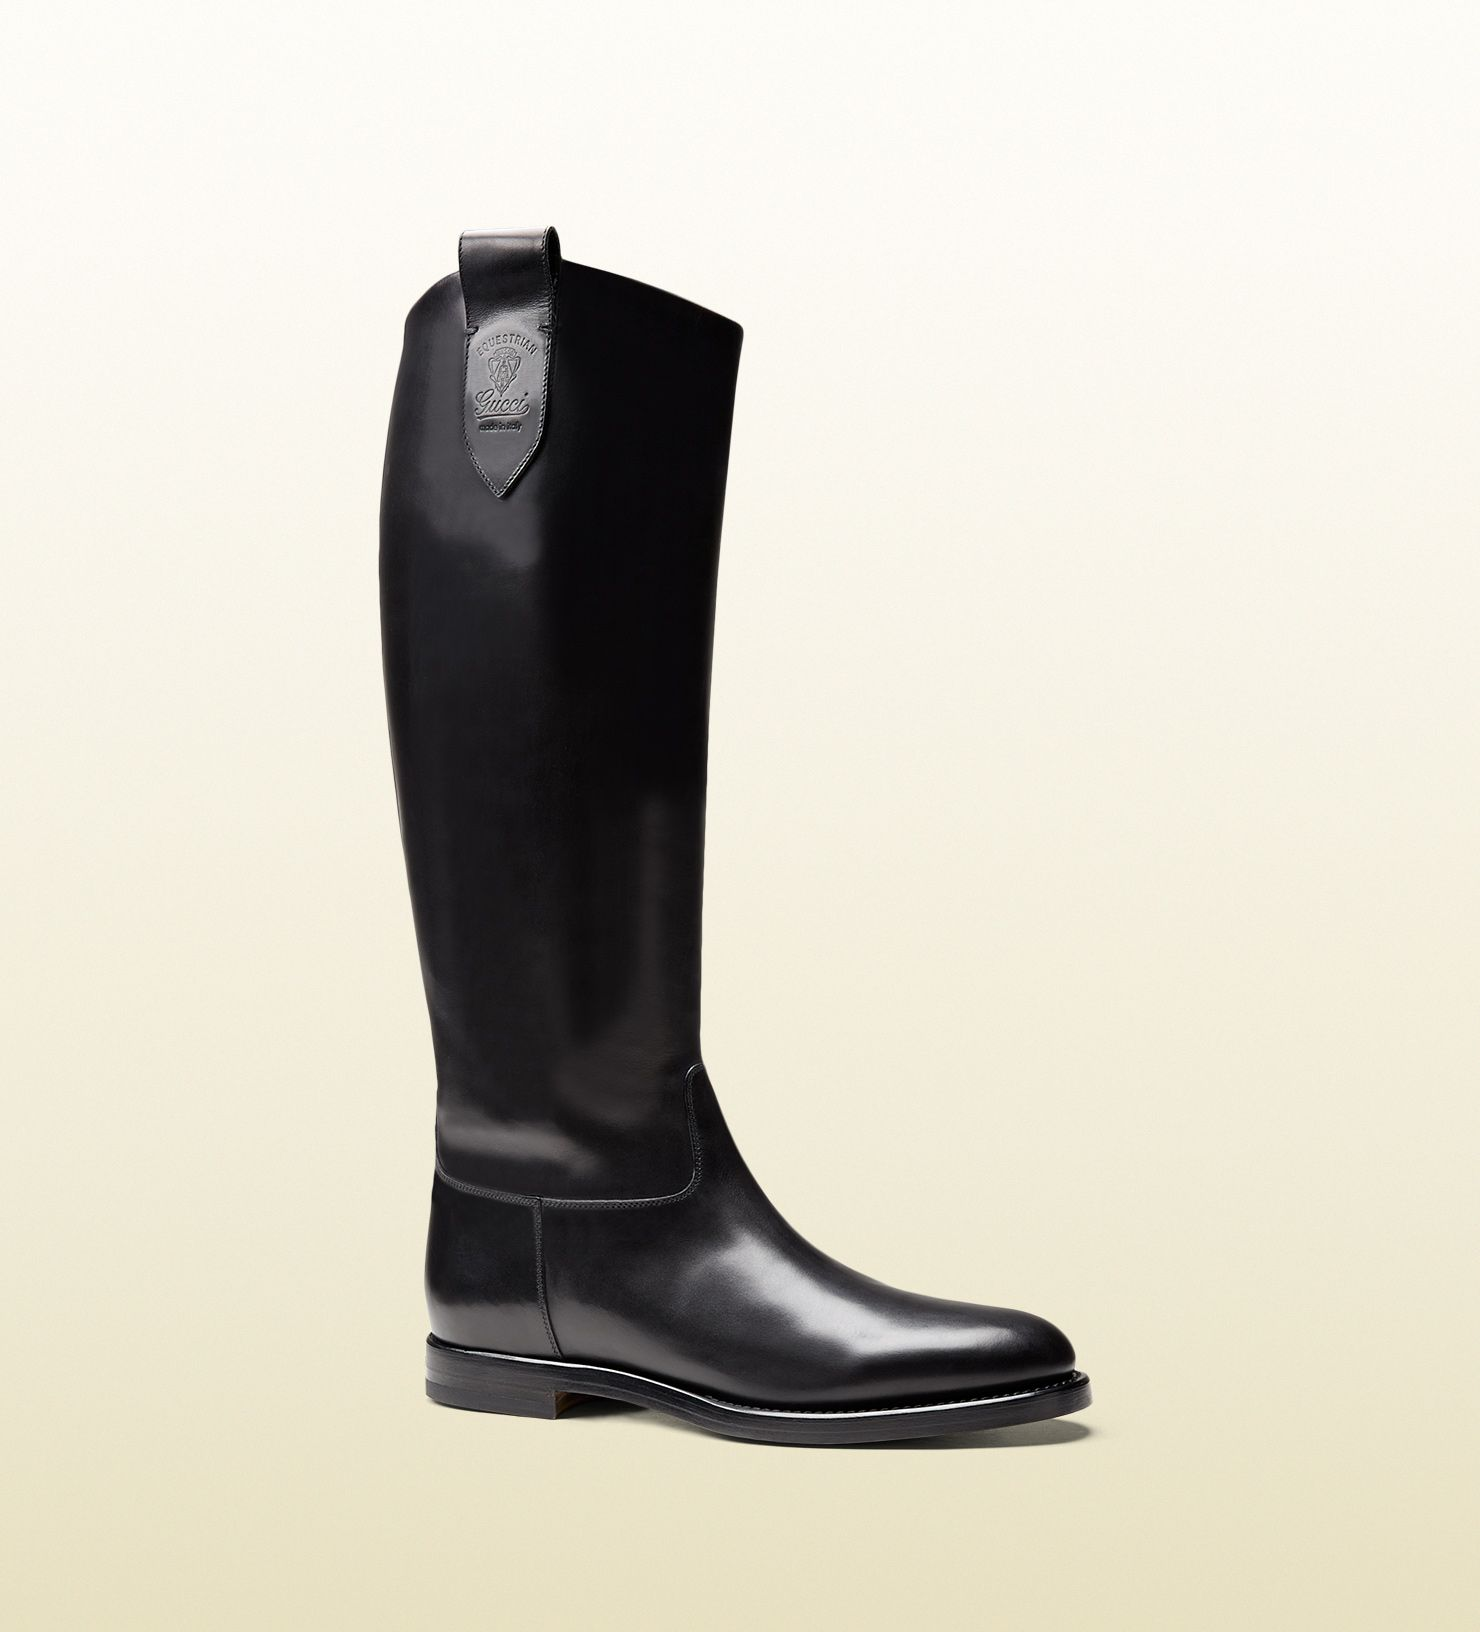 men's leather riding boot from equestrian collection | Boot Up In ...